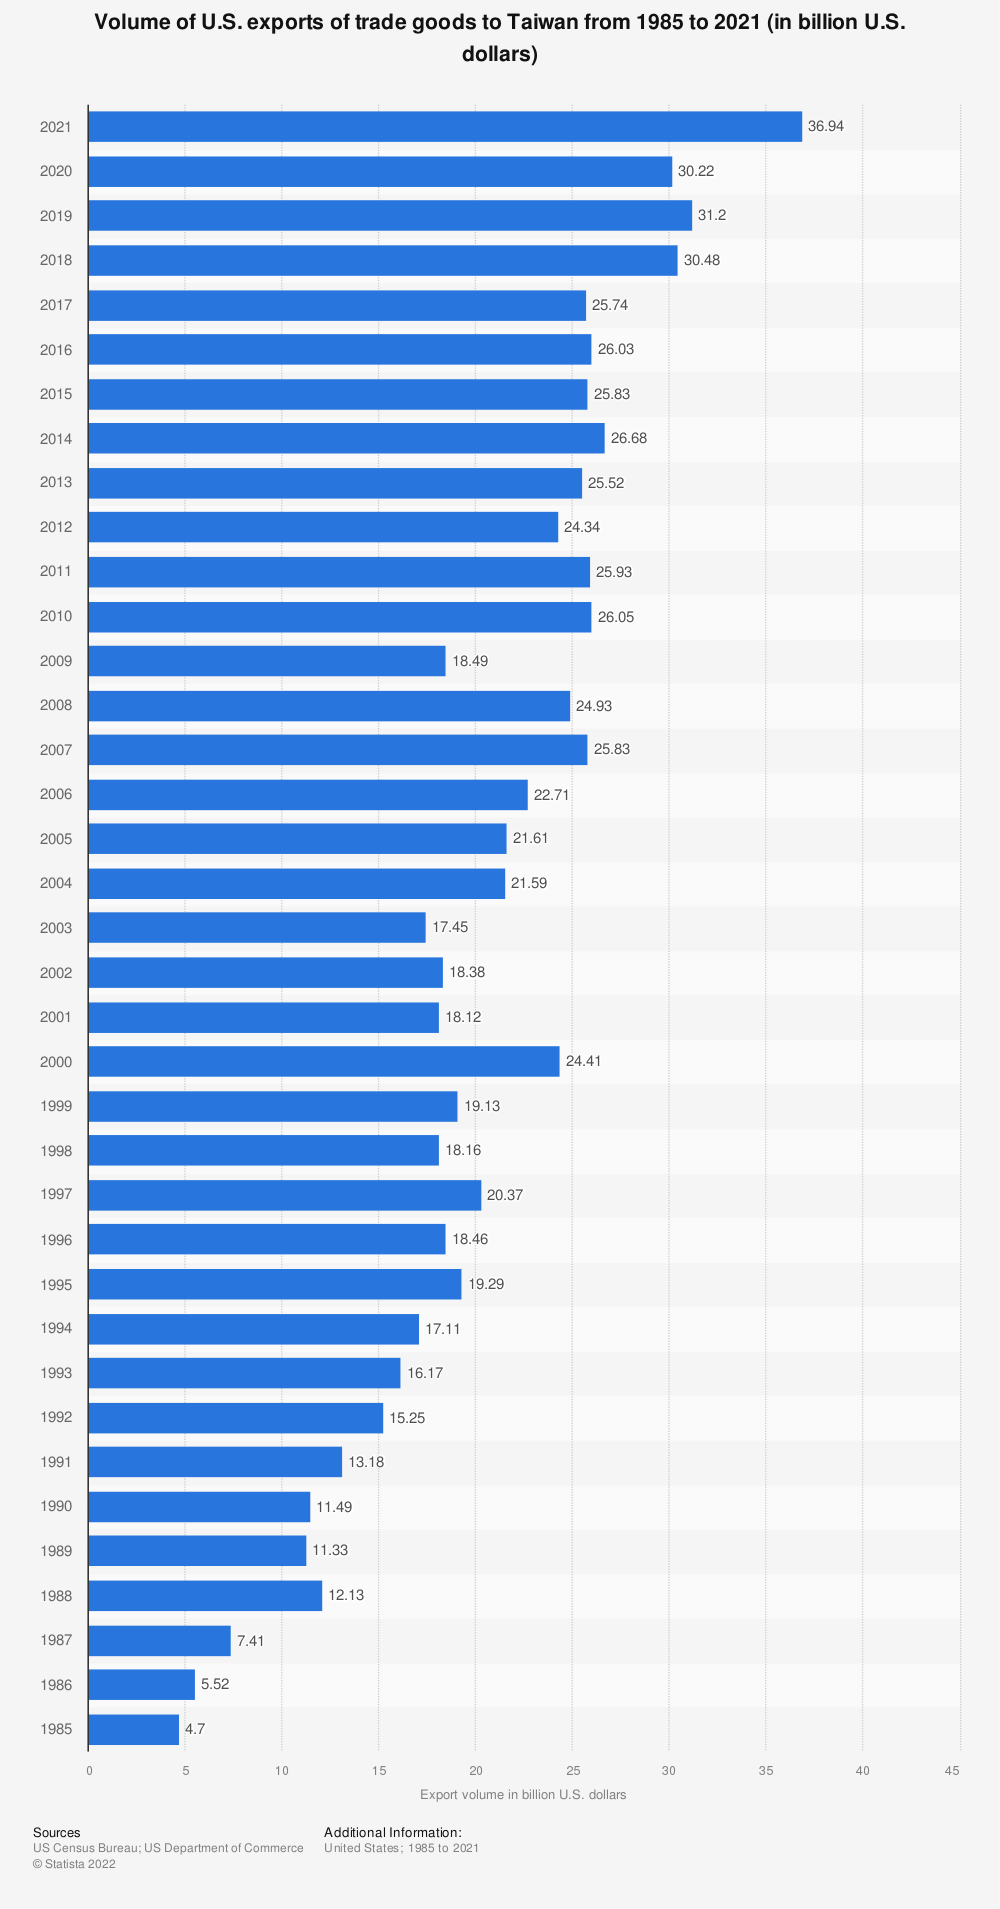 Statistic: Volume of U.S. exports of trade goods to Taiwan from 1985 to 2020 (in billion U.S. dollars) | Statista